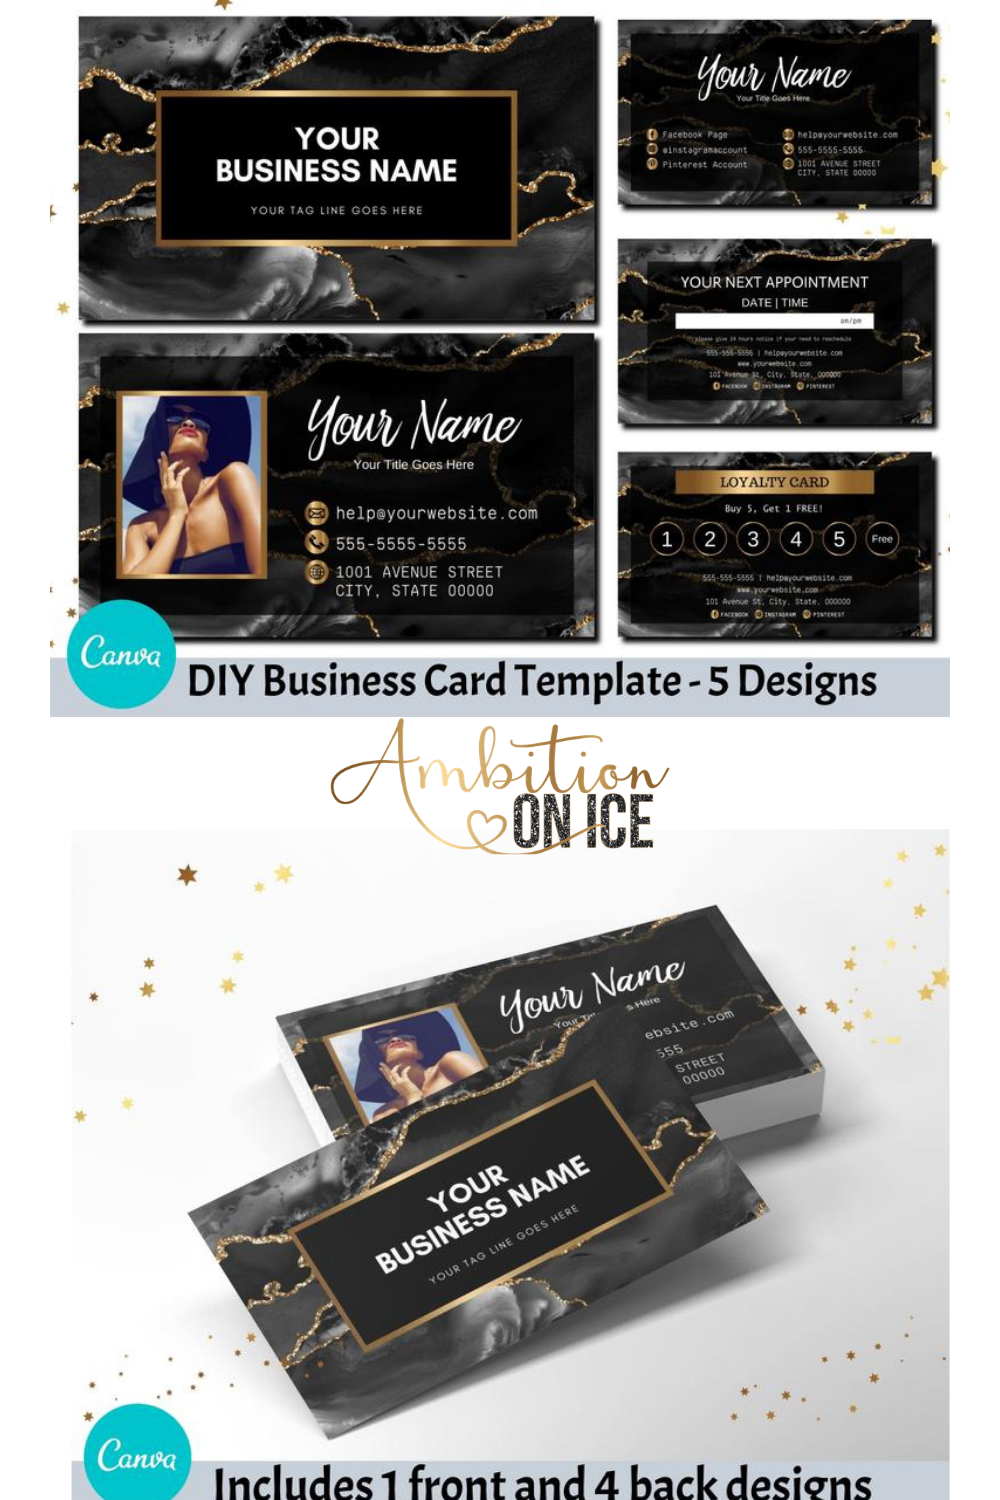 Black Agate Business Cards Canva Template Gold Glitter Business Card Design Appointment Card And Loyalty Card Instant Access Bagg Glitter Business Cards Business Card Design Business Cards Diy Templates